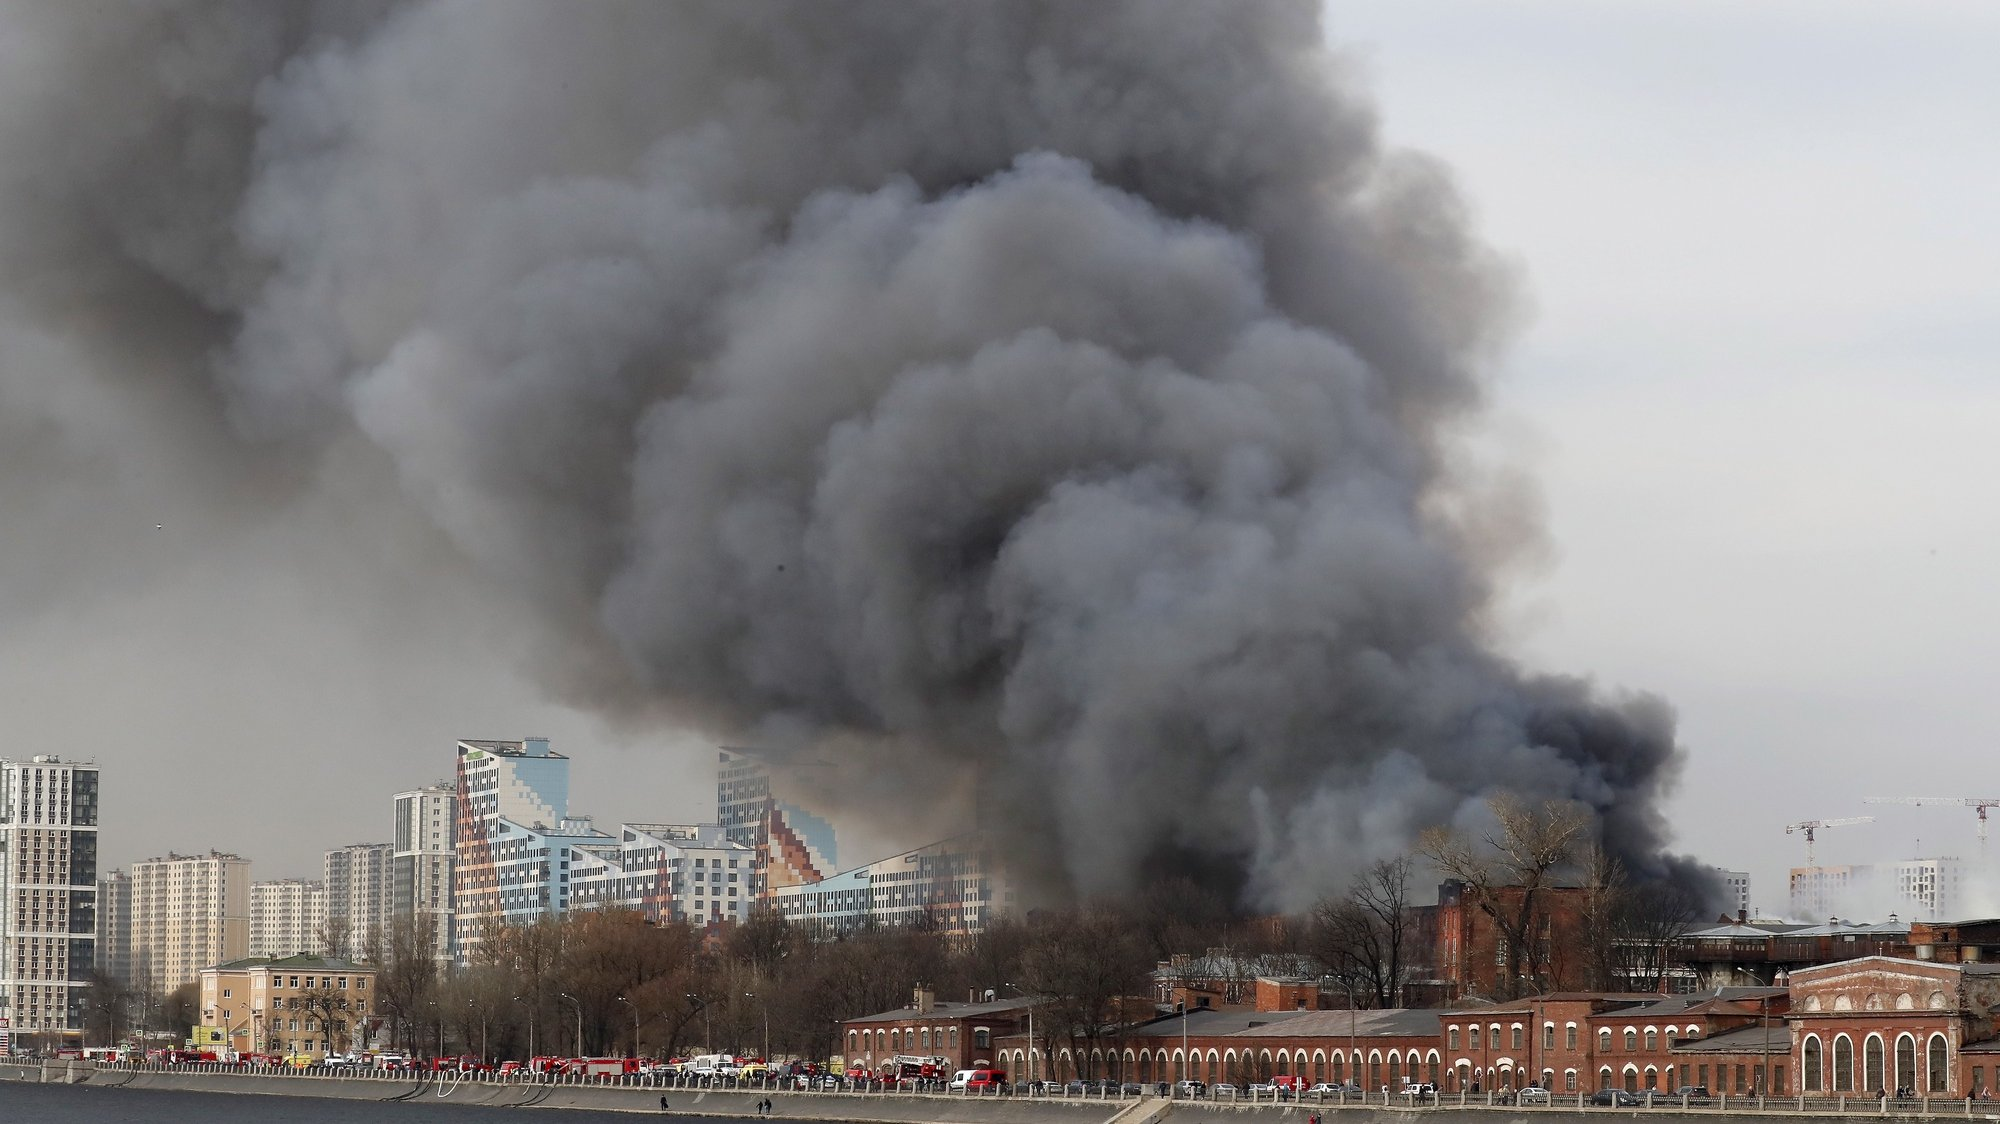 epa09130981 Smoke and fire rise over the building of the factory 'Nevskaya manufactory' located near the Oktyabrskaya embankment of the Neva in St. Petersburg, Russia, 12 April 2021. Some 300 firefighters and 60 pieces of equipment and a helicopter are taking part in extinguishing the fire. One firefighter was killed when extinguishing the fire.  EPA/ANATOLY MALTSEV